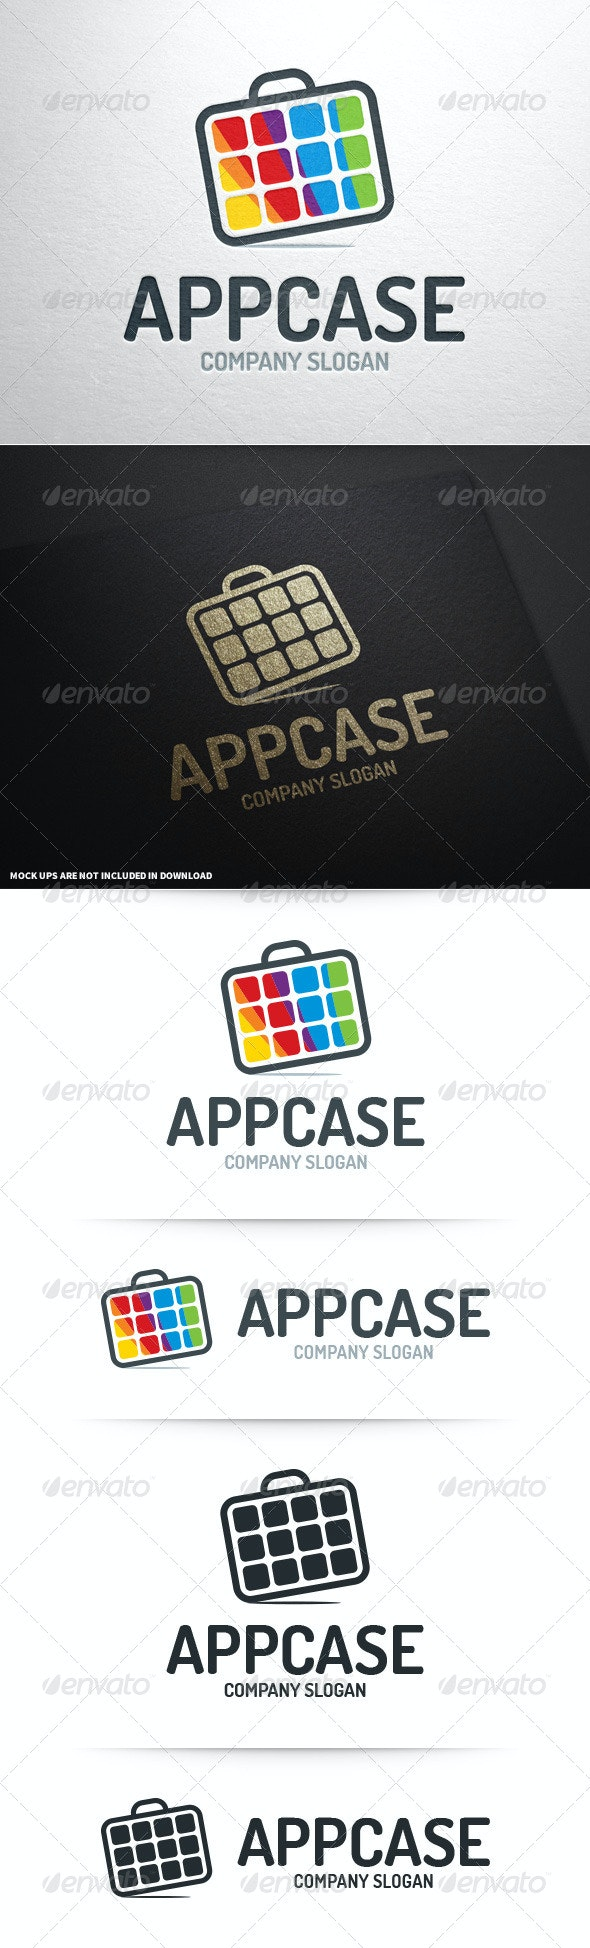 App Case Logo Template - Abstract Logo Templates